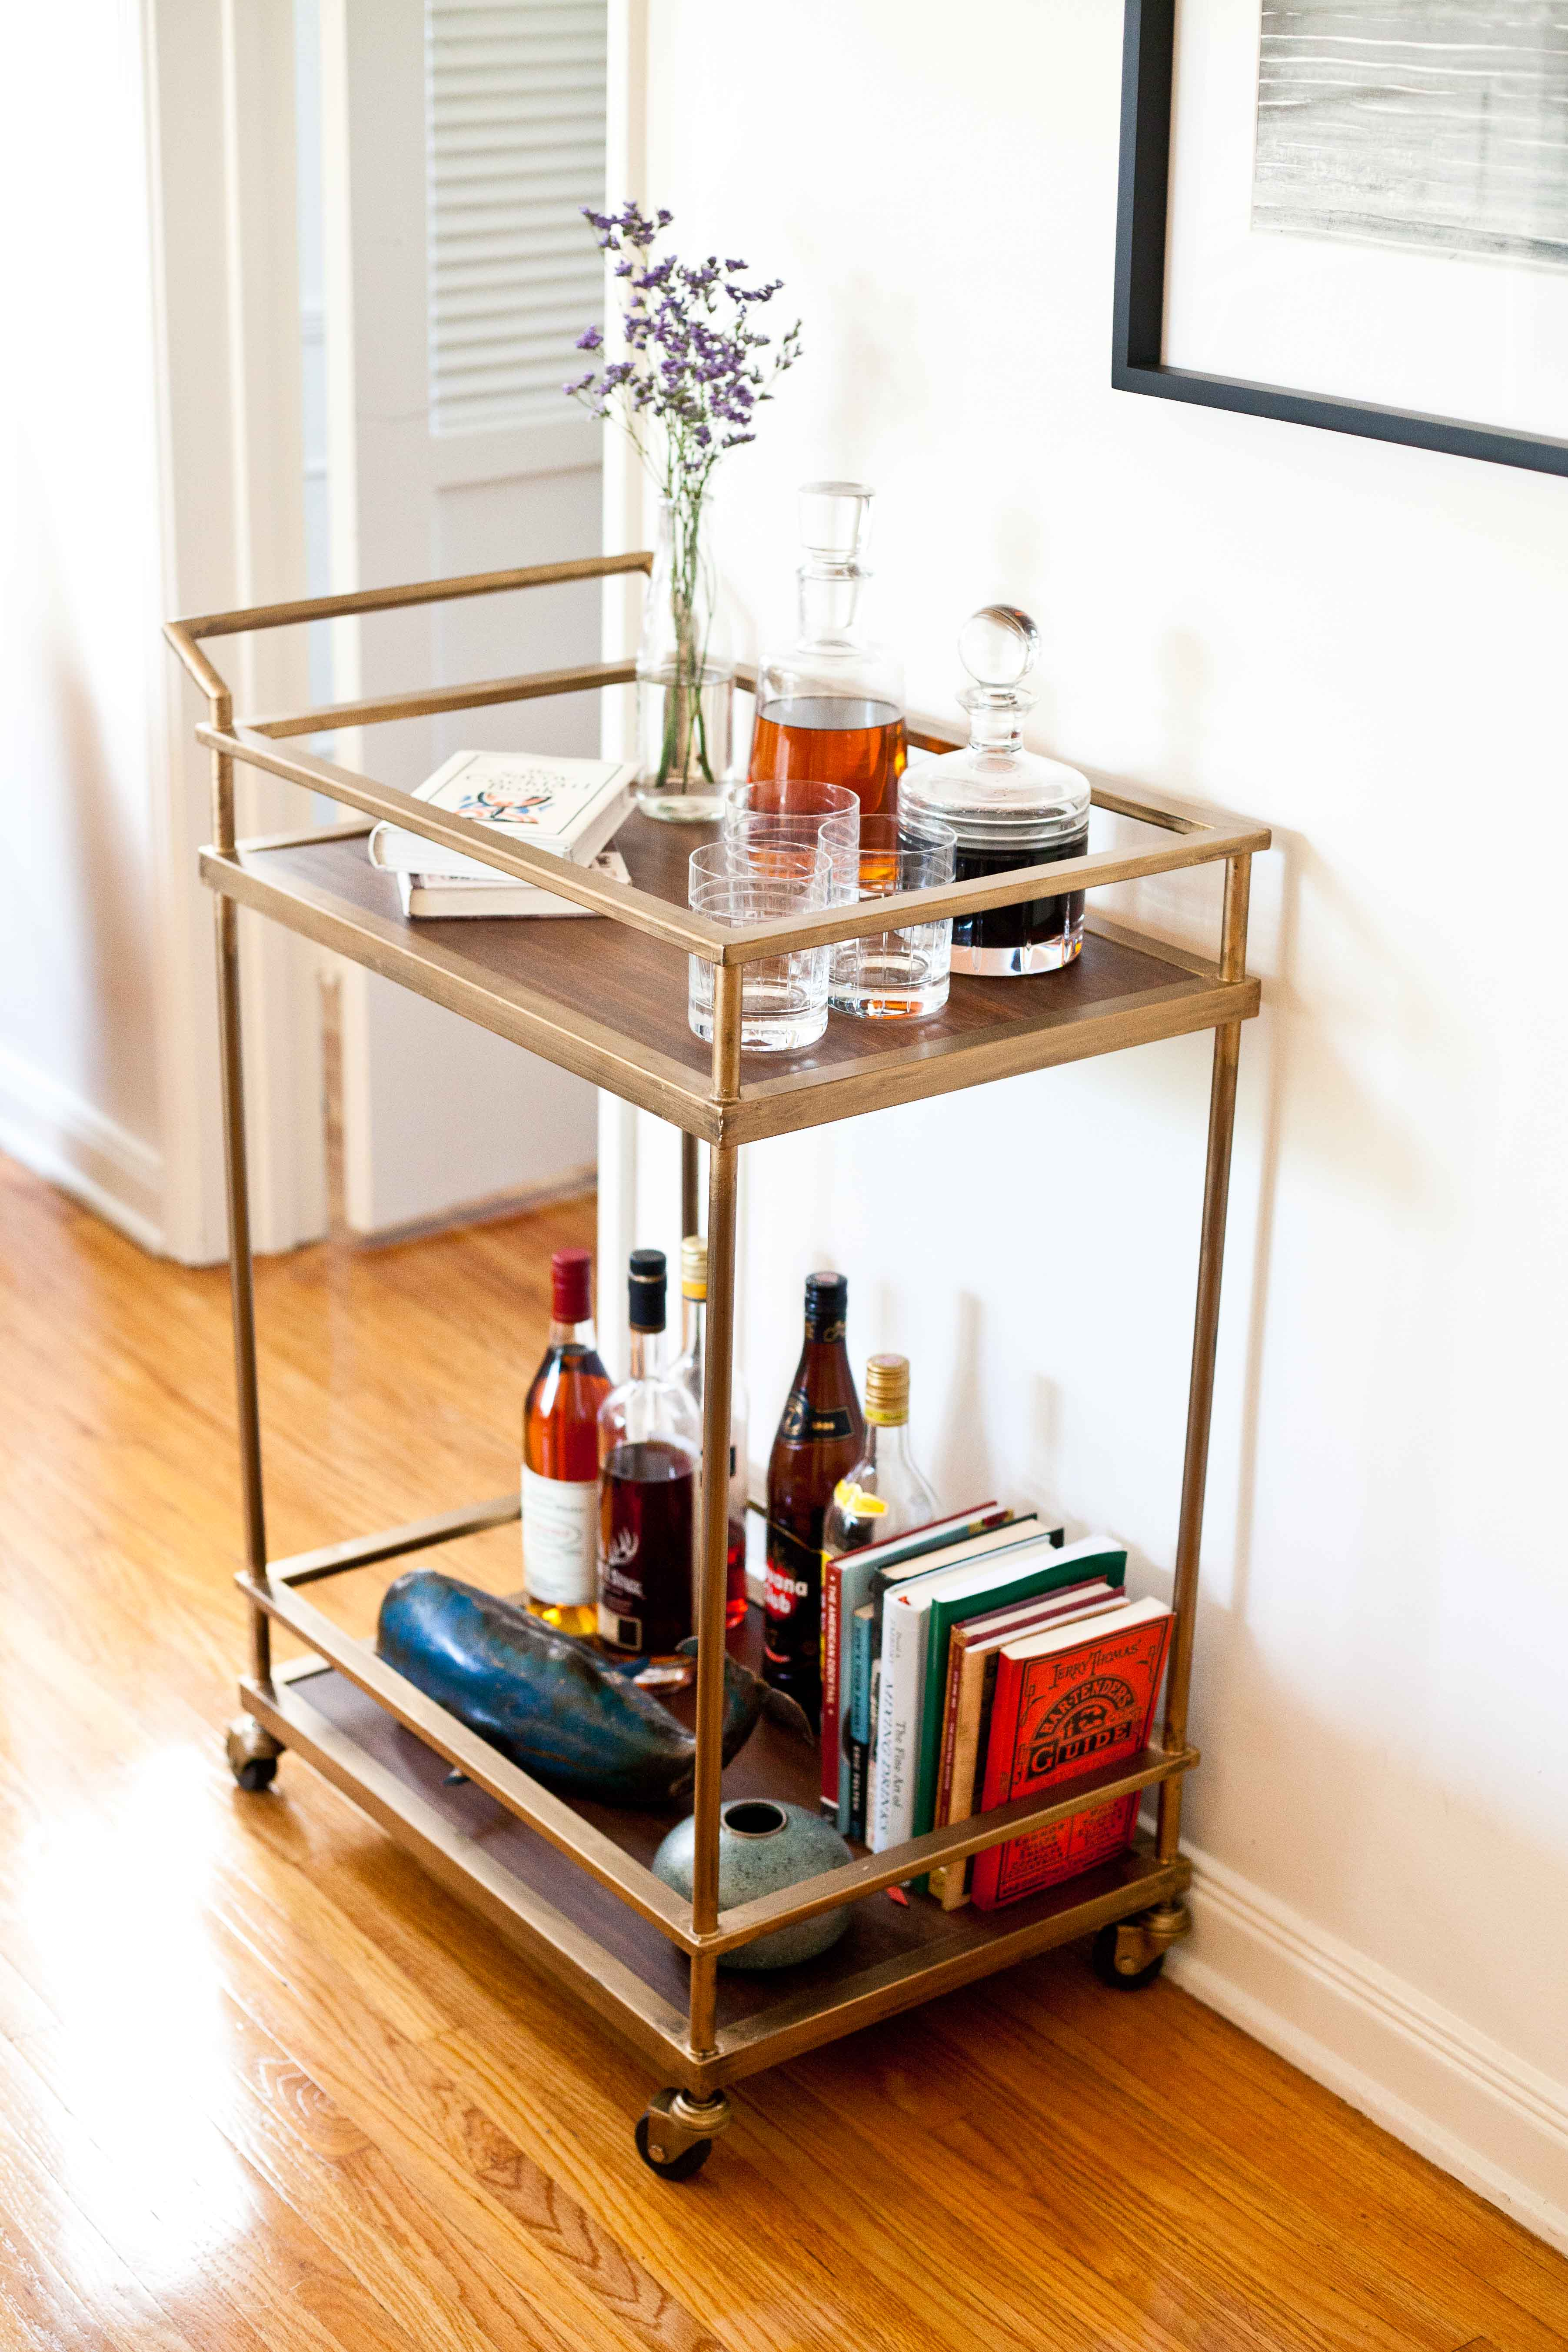 Captivating bar carts for bar furniture ideas with gold bar cart and diy bar cart